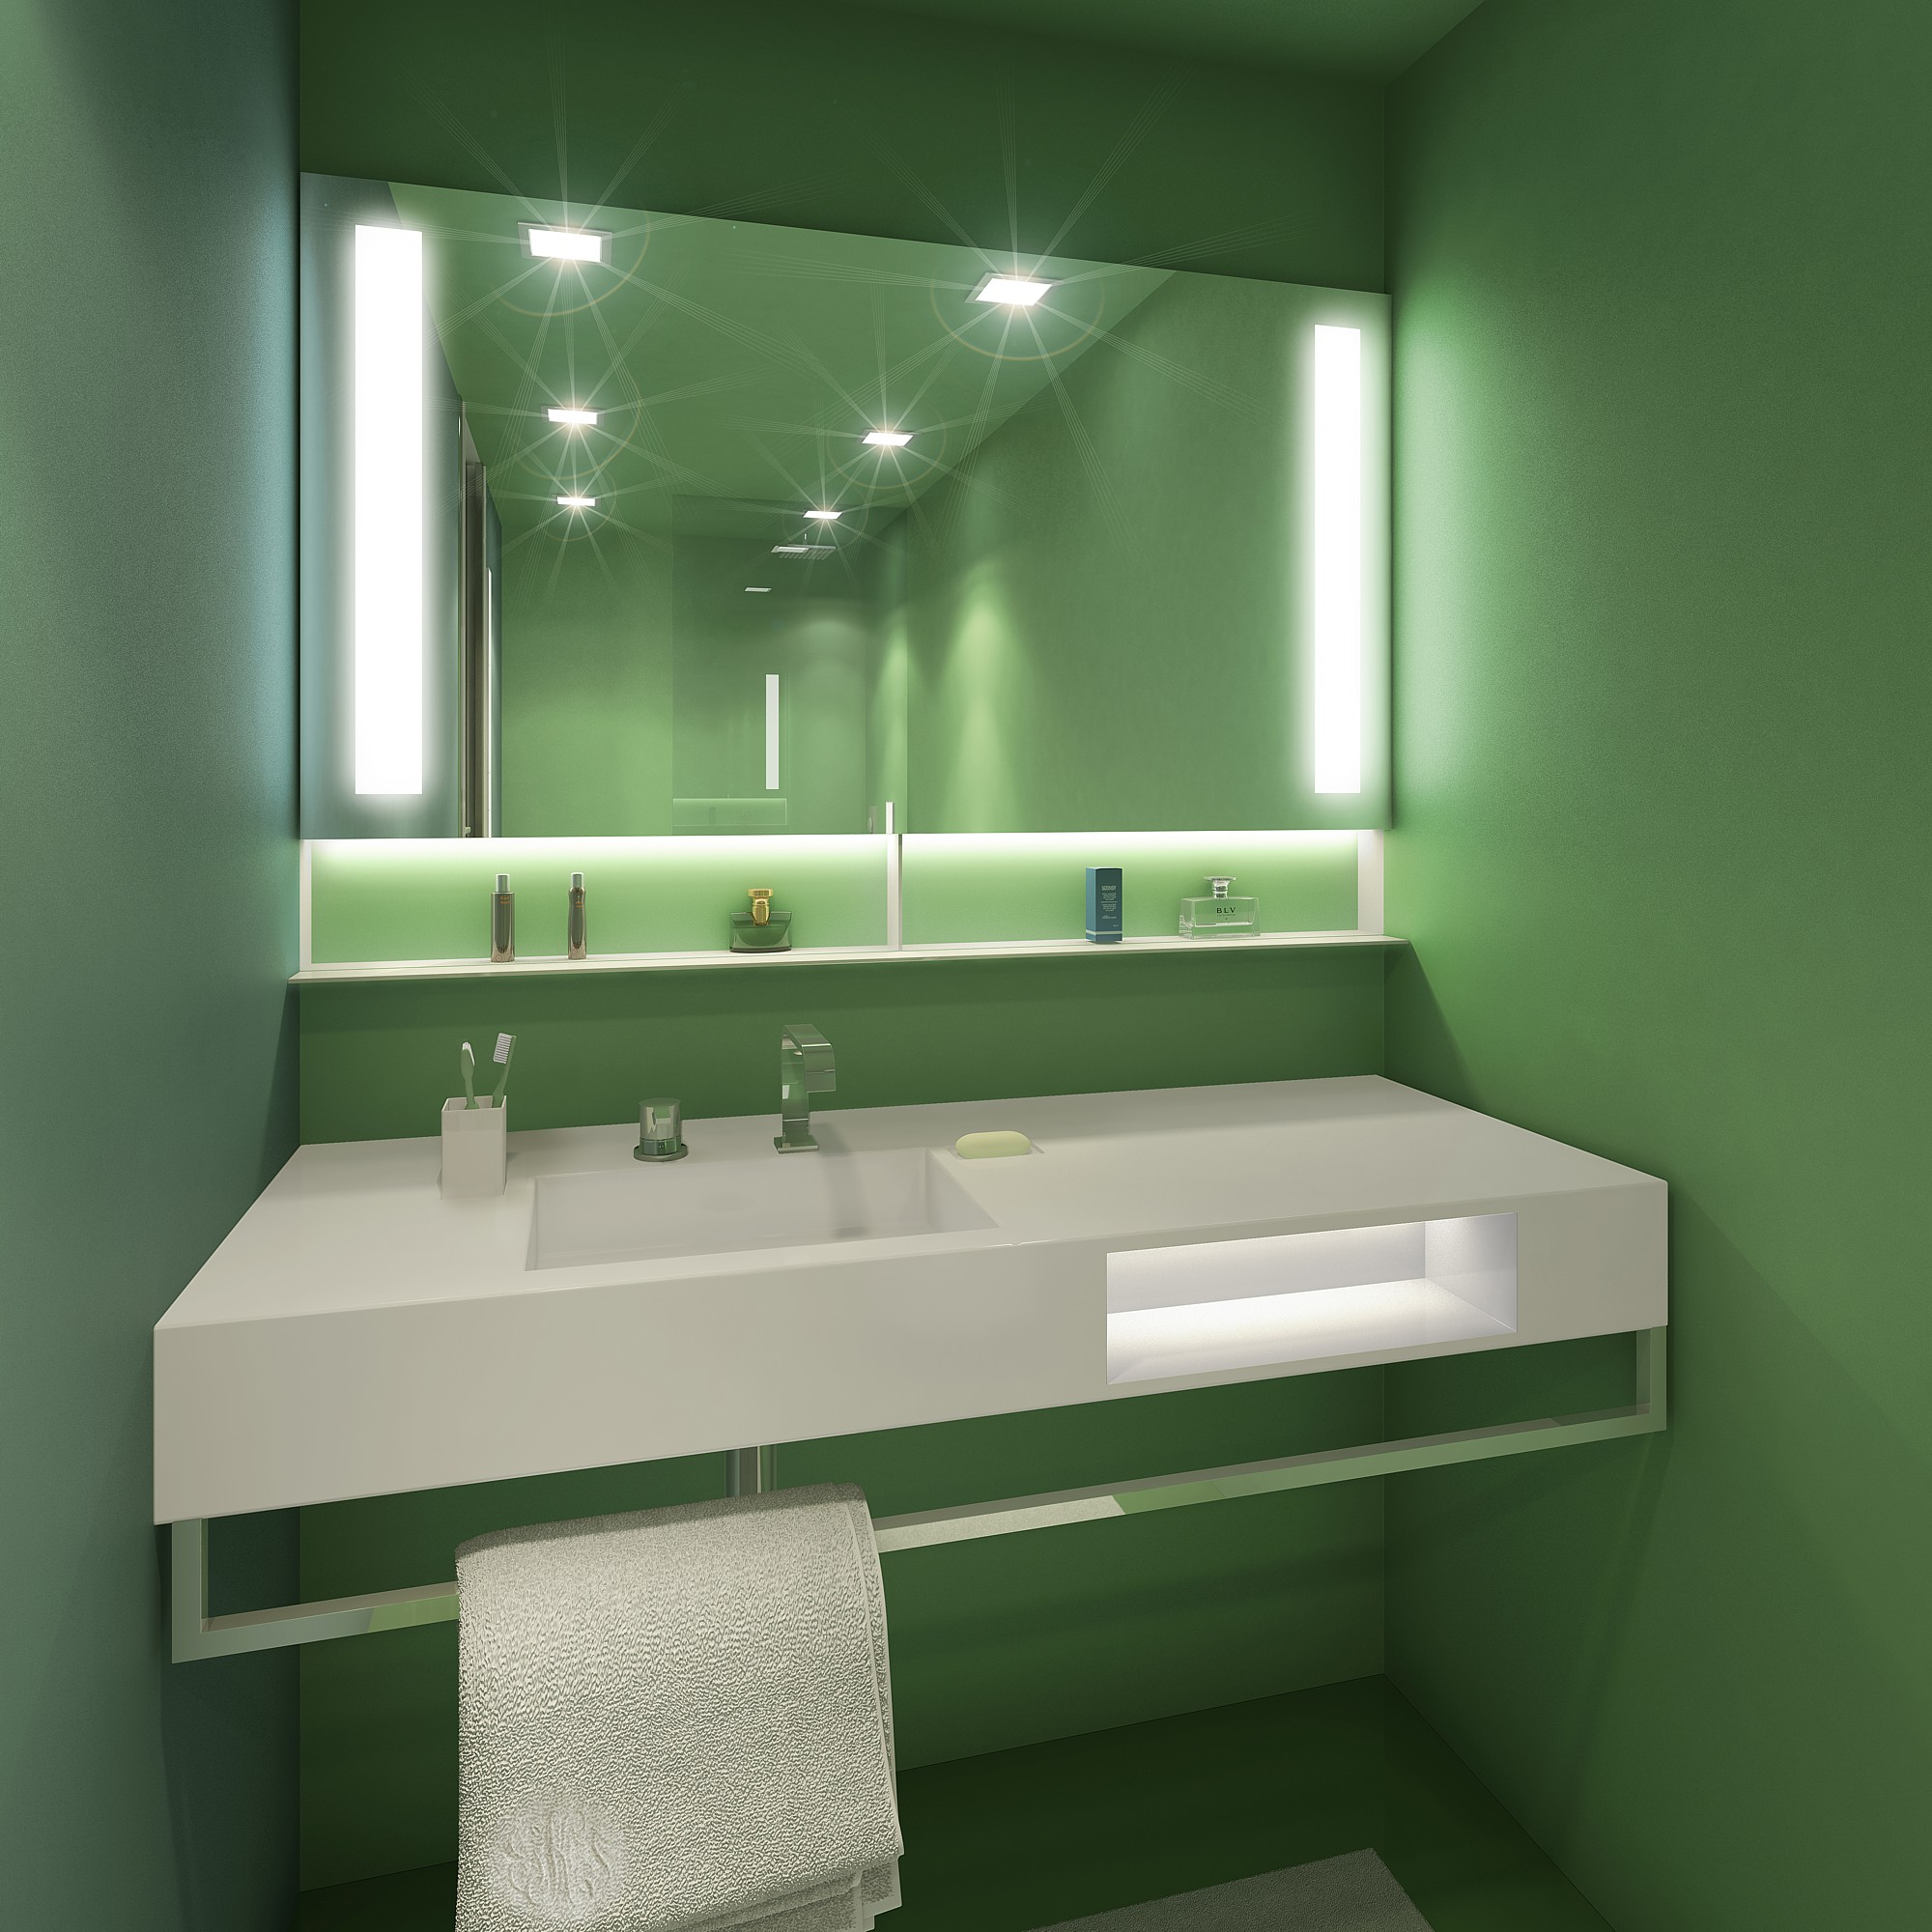 aicuisines.com/wp-content/uploads/2015/04/Design-studio-BUILT-IN-mirror_sea-green_des.-V.-Ambroz_Corian®